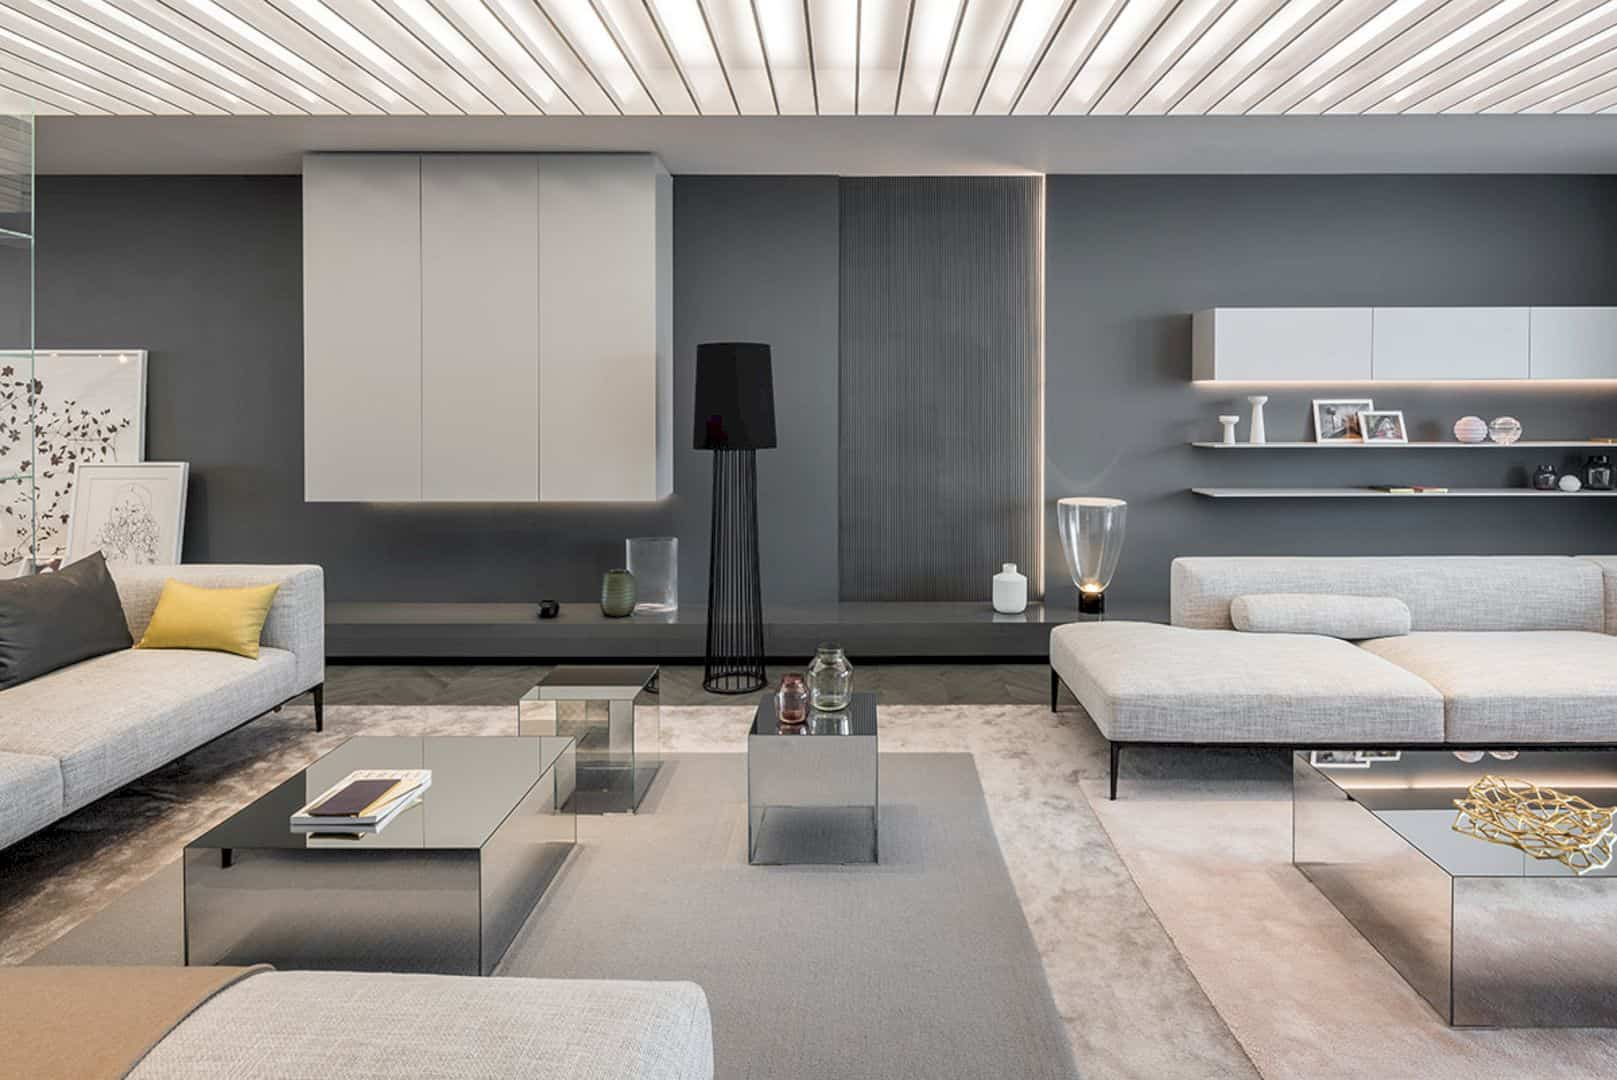 Shades Of Grey An Apartment Demonstration With Modern Interior And Dark Grey Theme